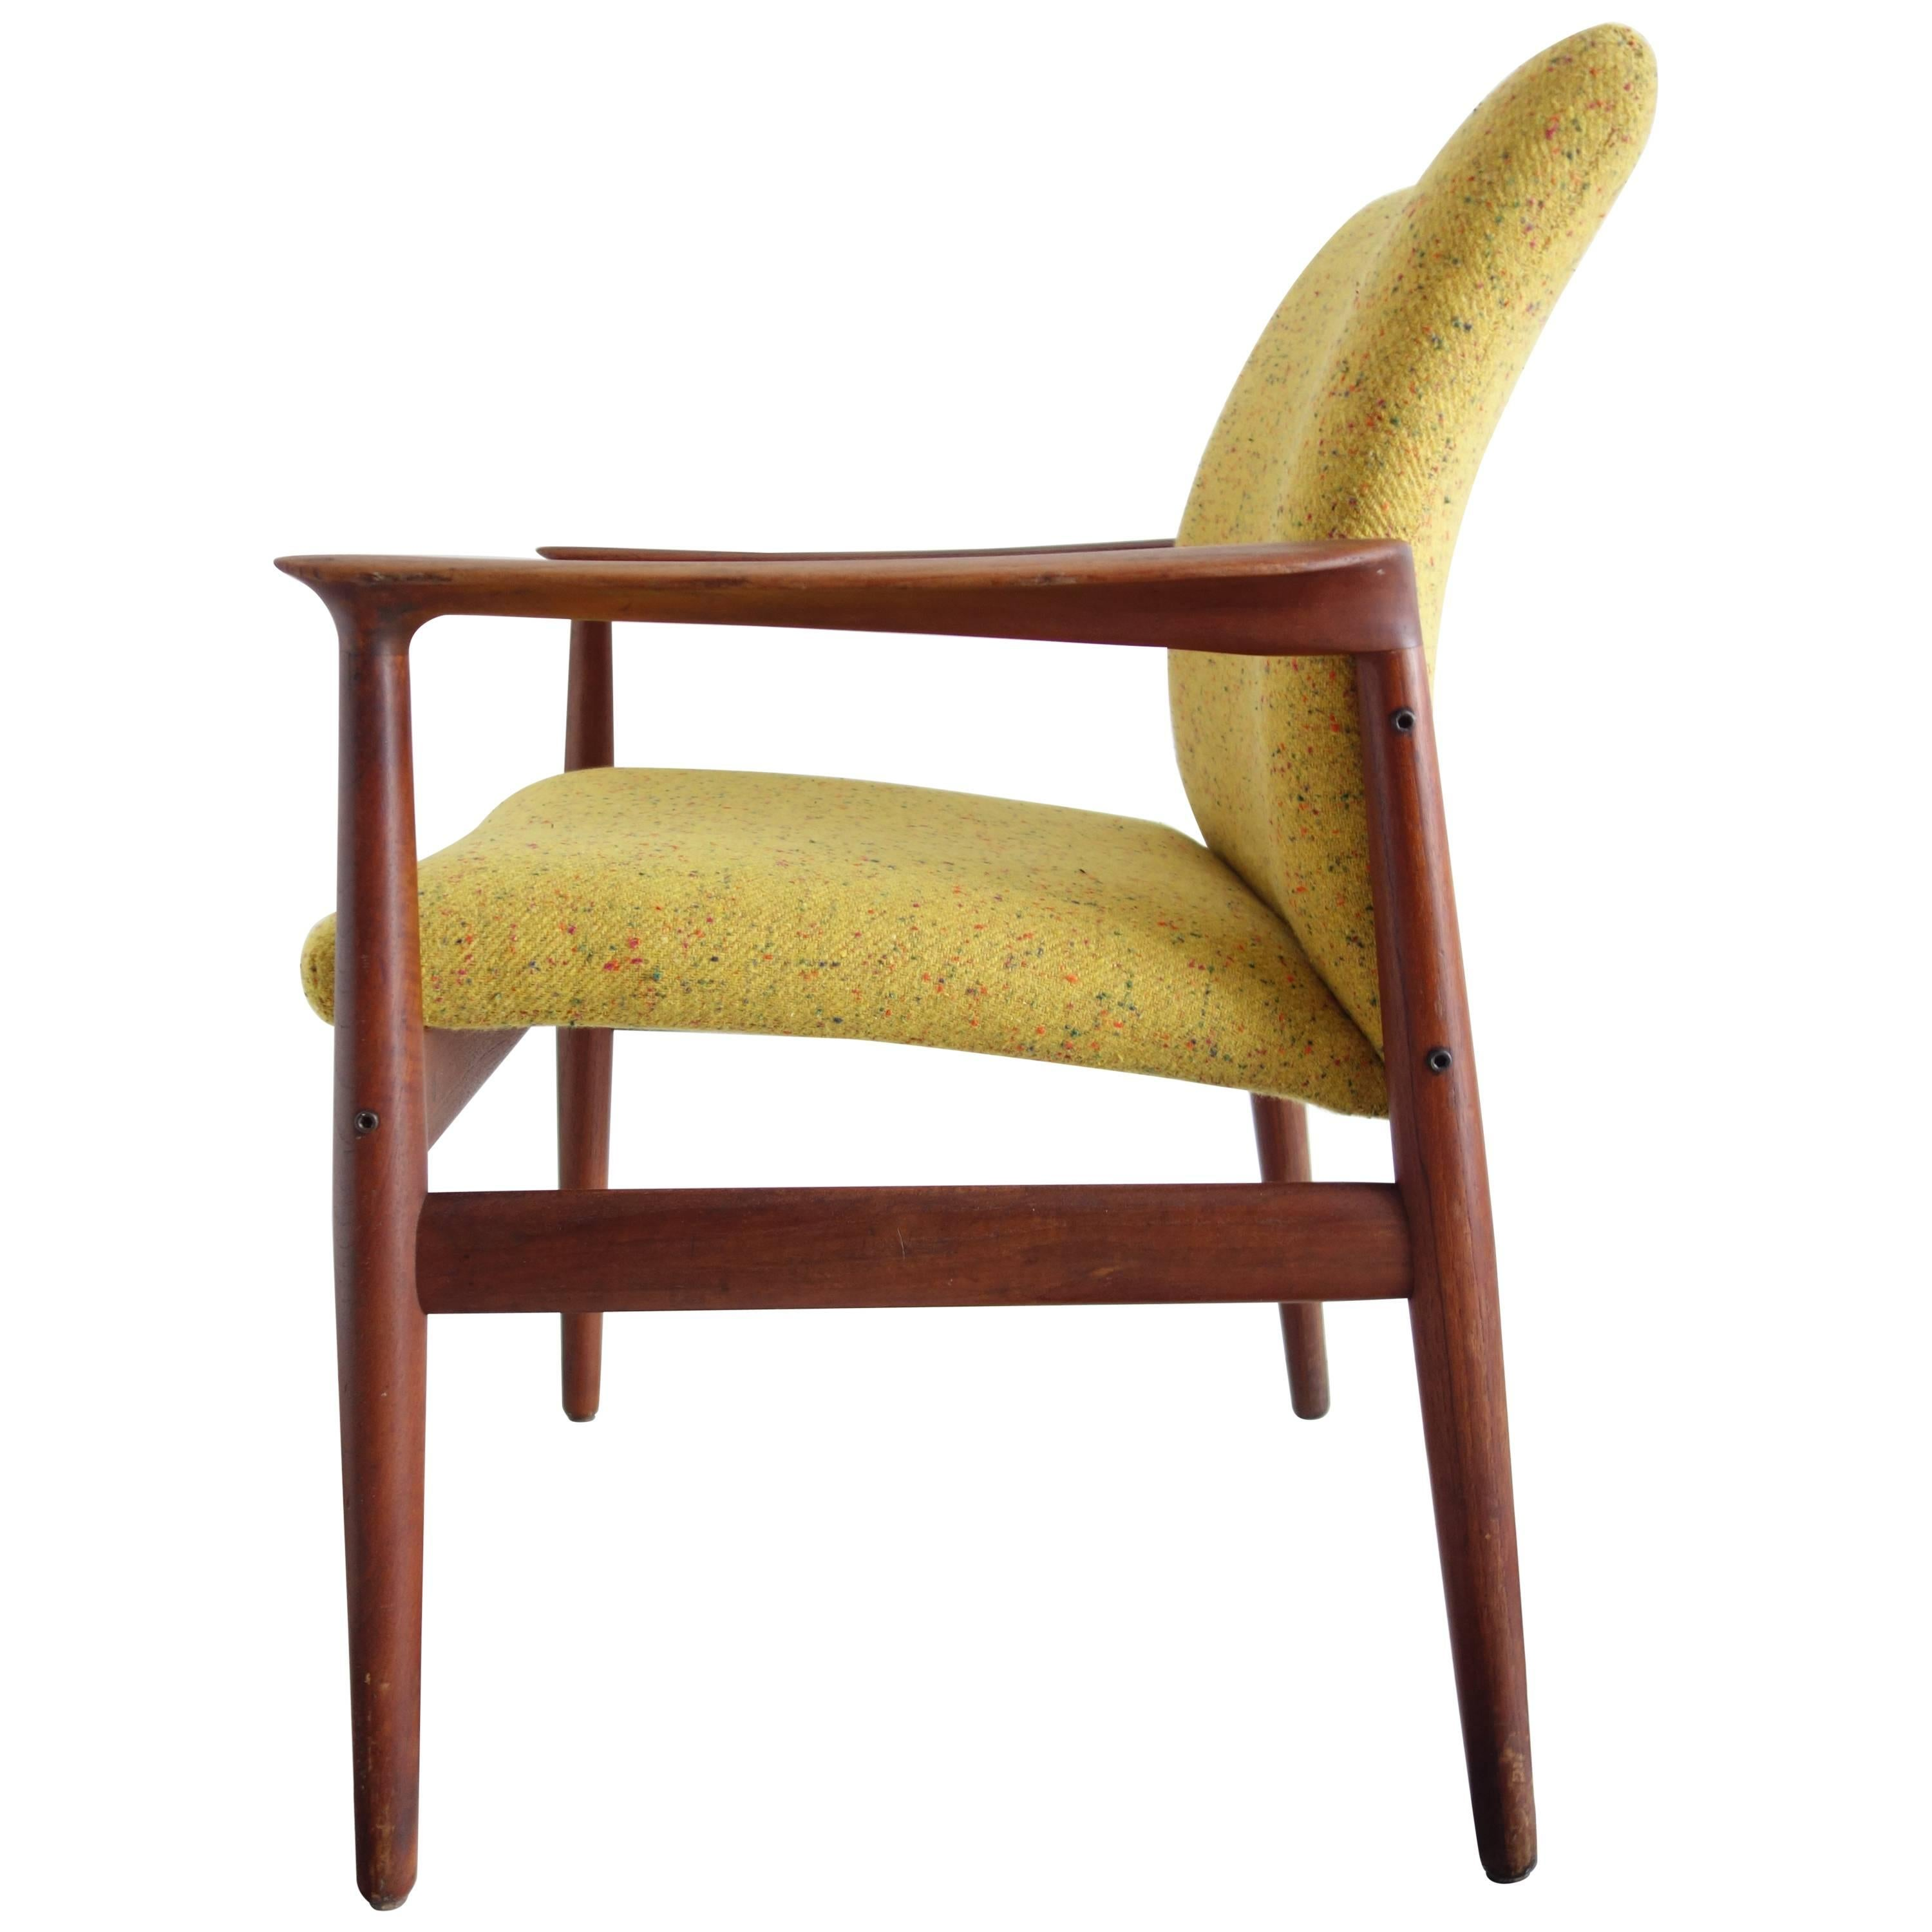 Grete Jalk Danish Teak Chair Yellow Upholstery Producer Glostrup